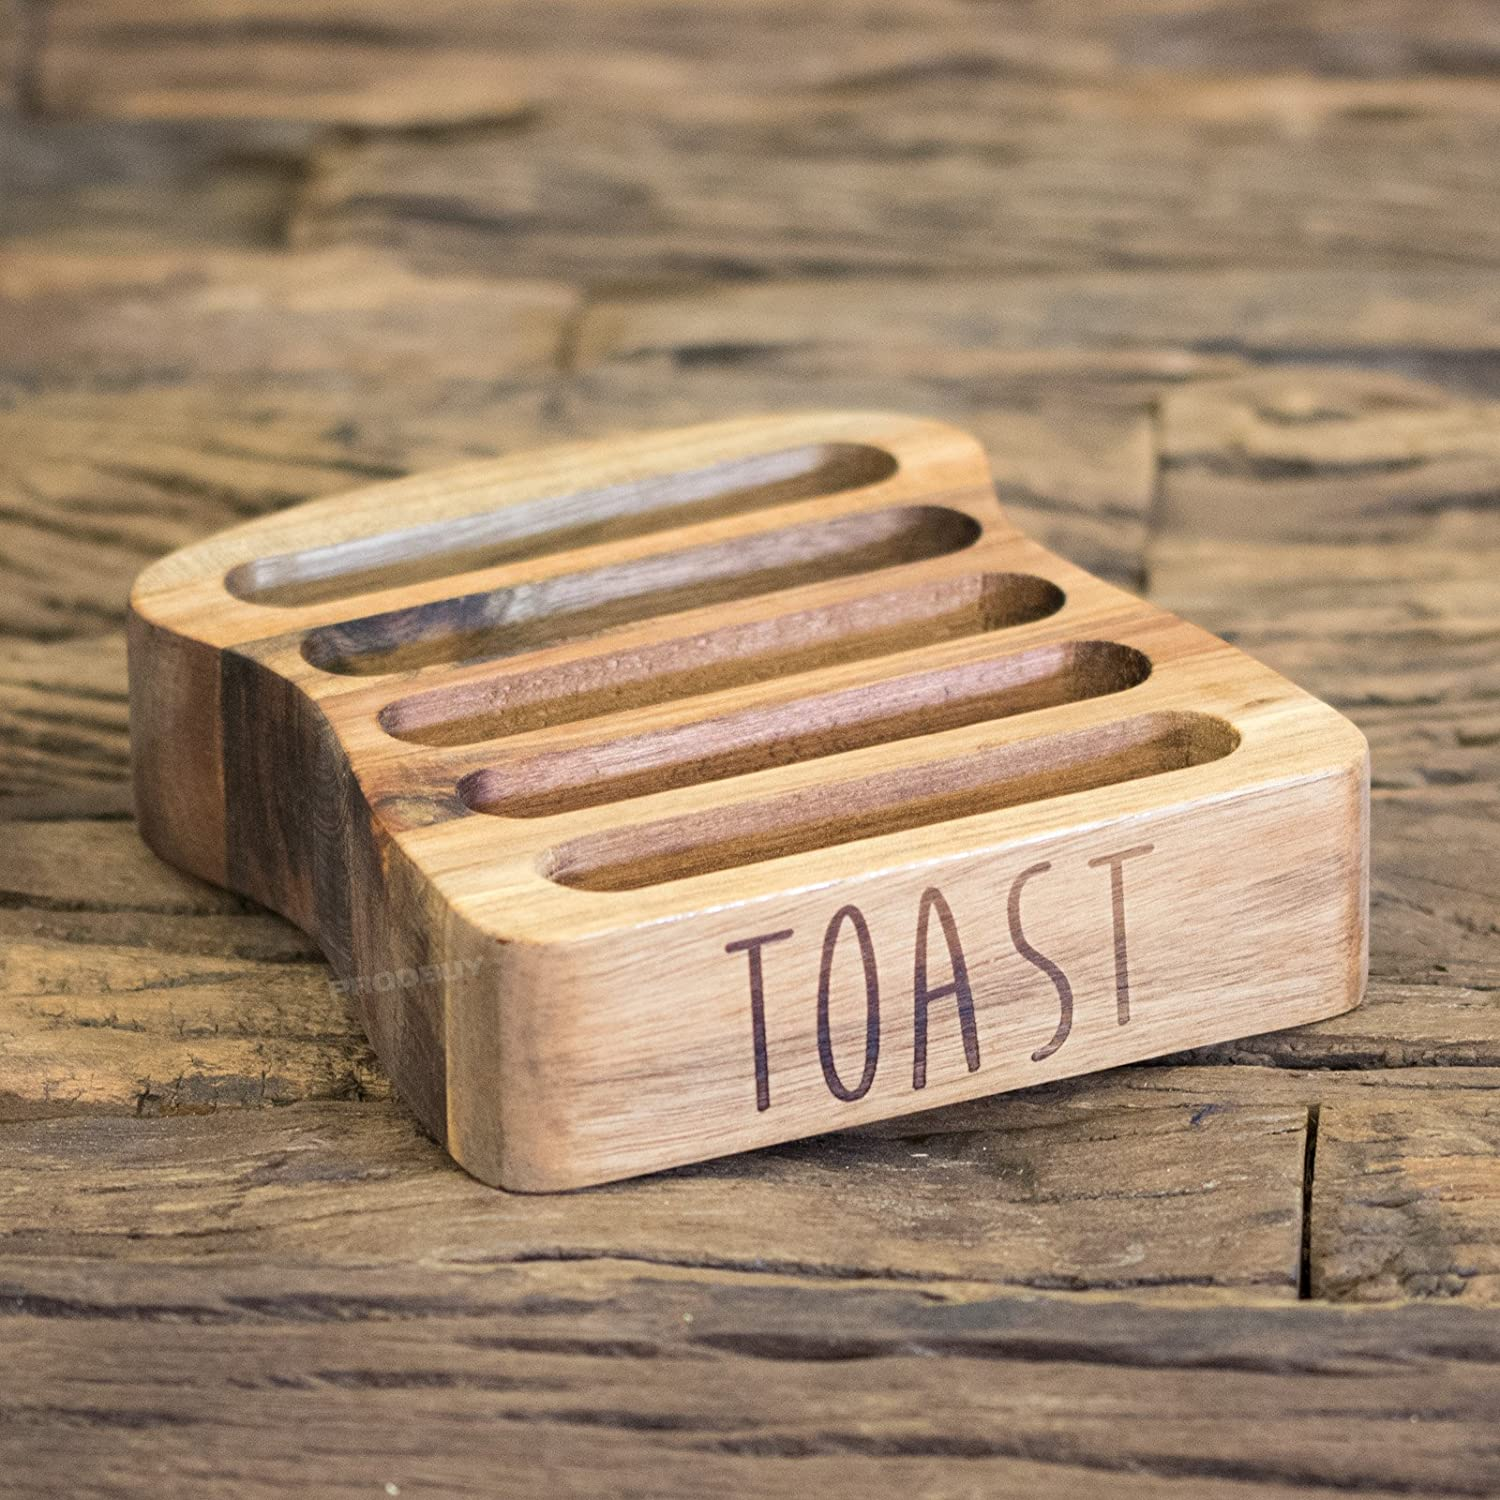 5 Slice Acacia Wooden Toast Serving Rack ProdBuy Limited